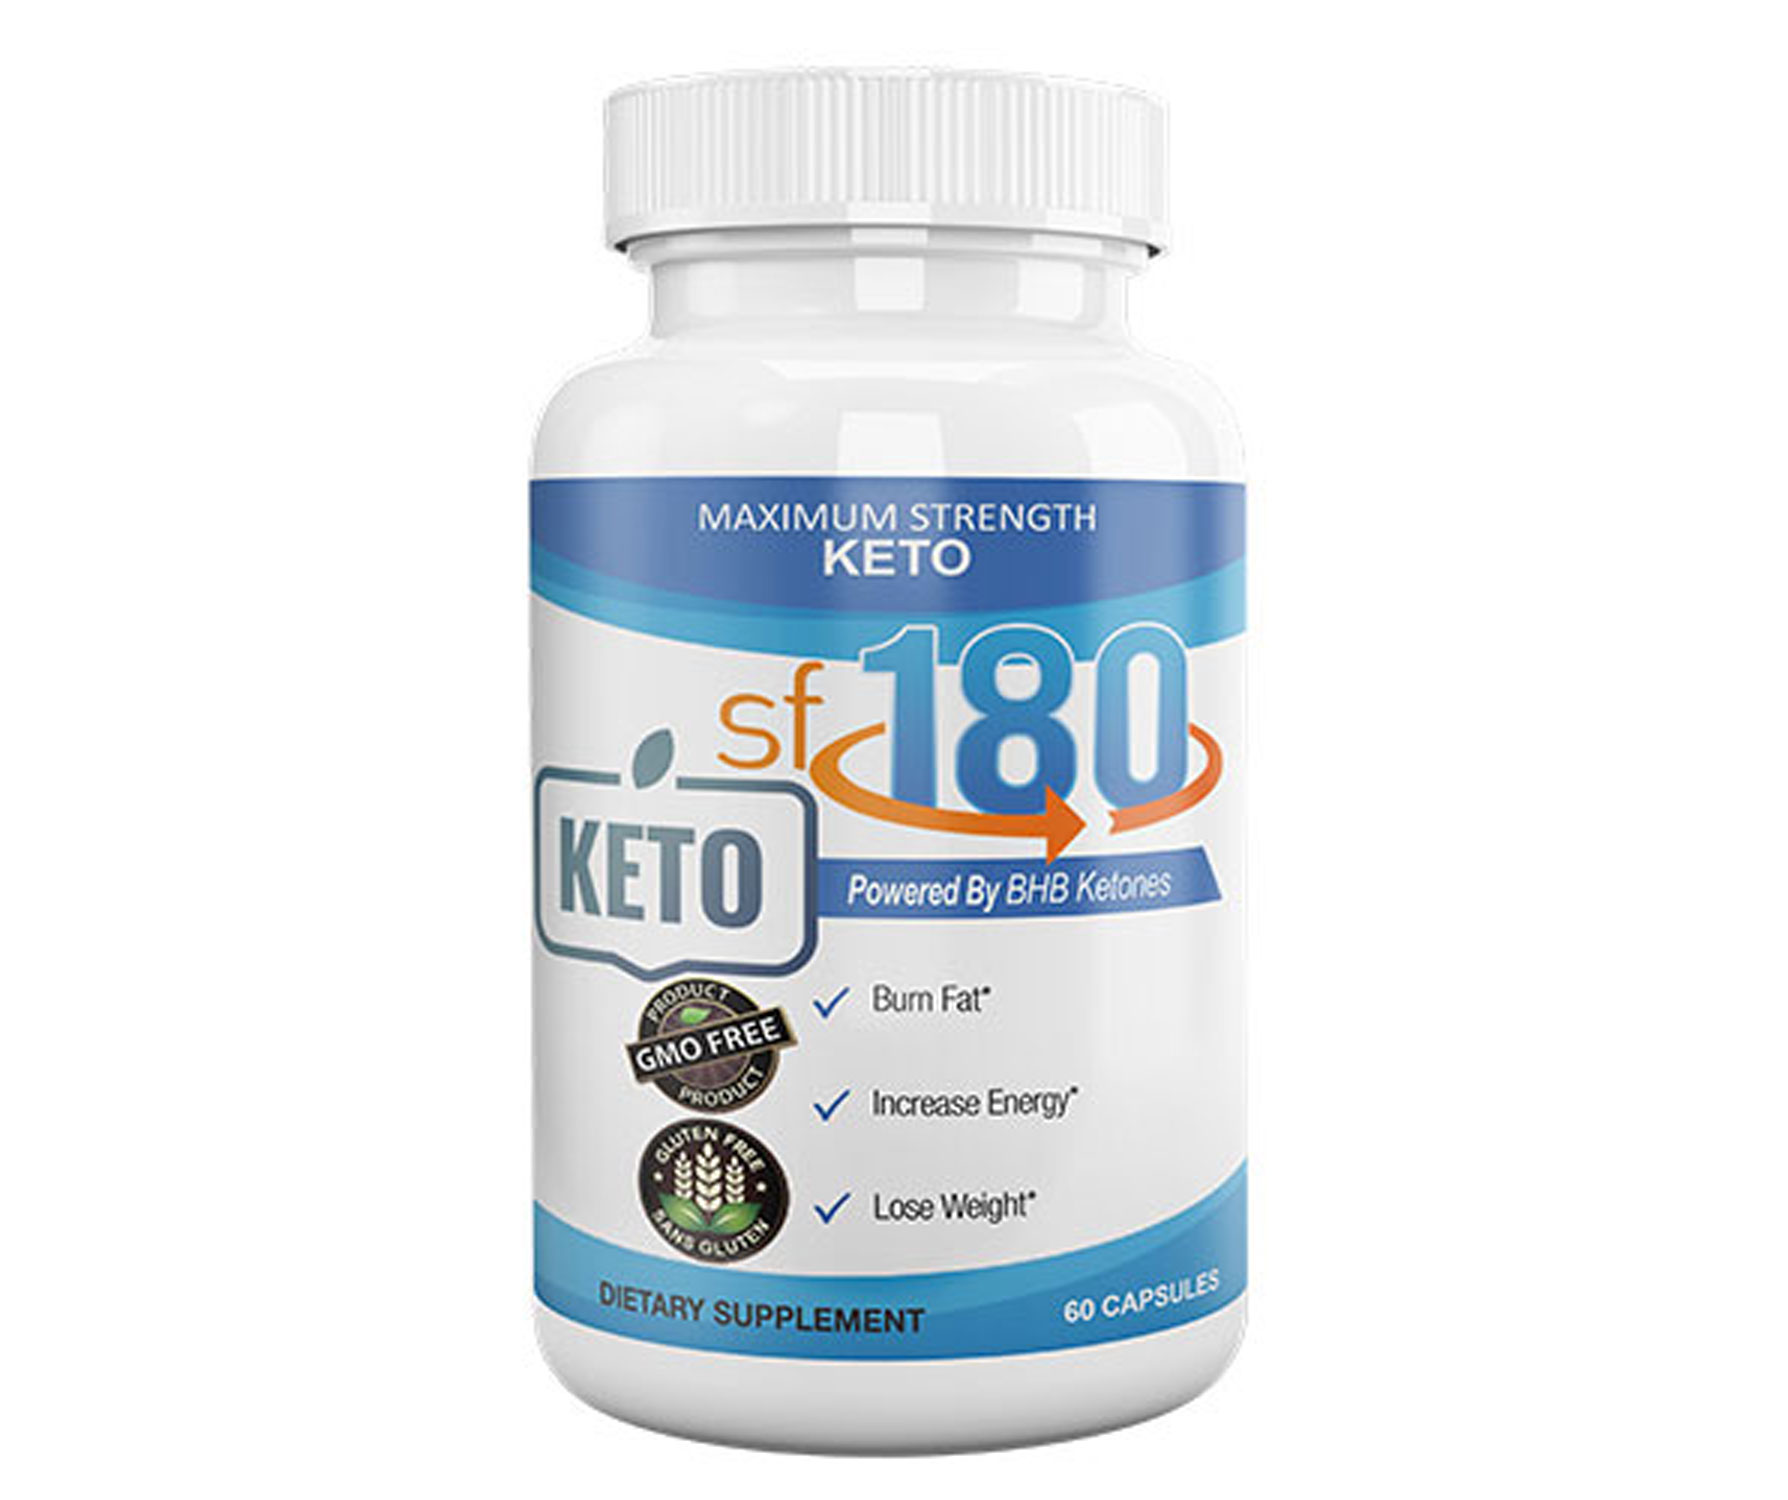 SF-180-Keto-review